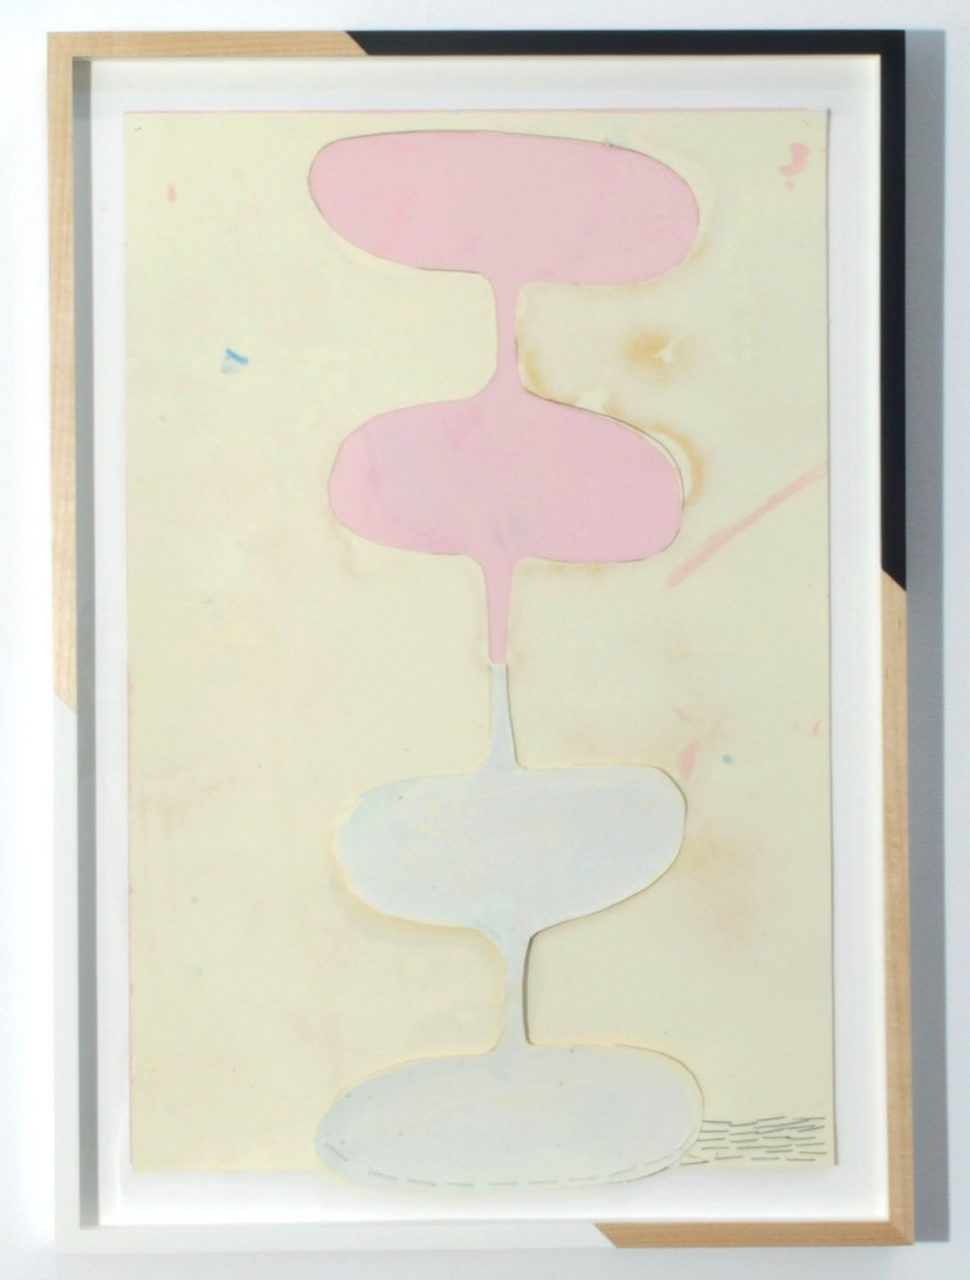 Jim Lee and The Cream Tones | Untitled (Pink, Cream, Peel, Down), 2014